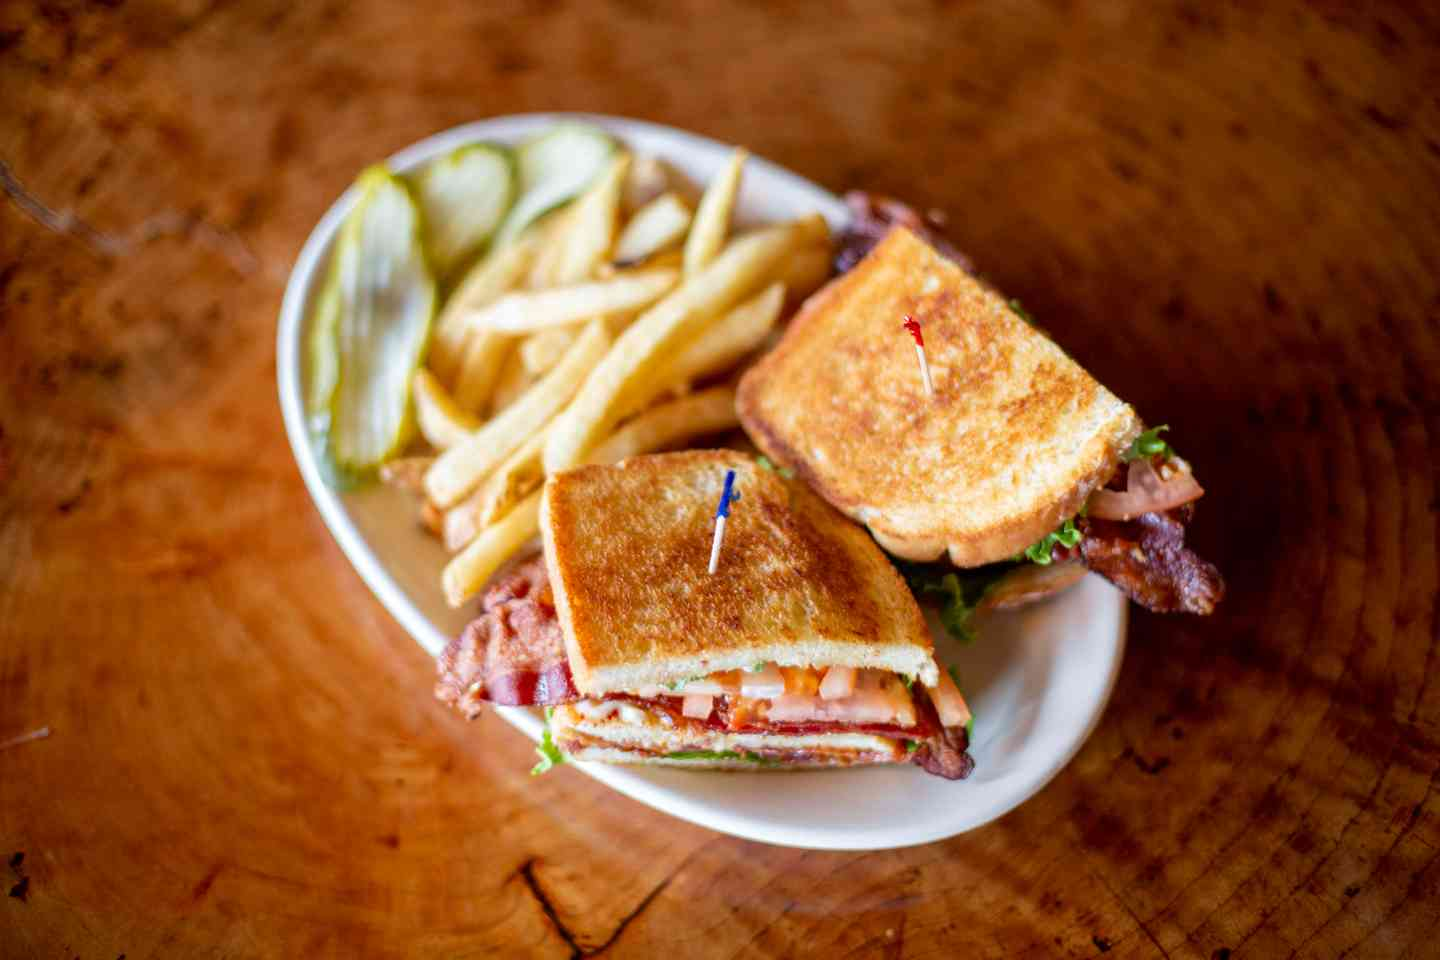 The Club-Style BLT